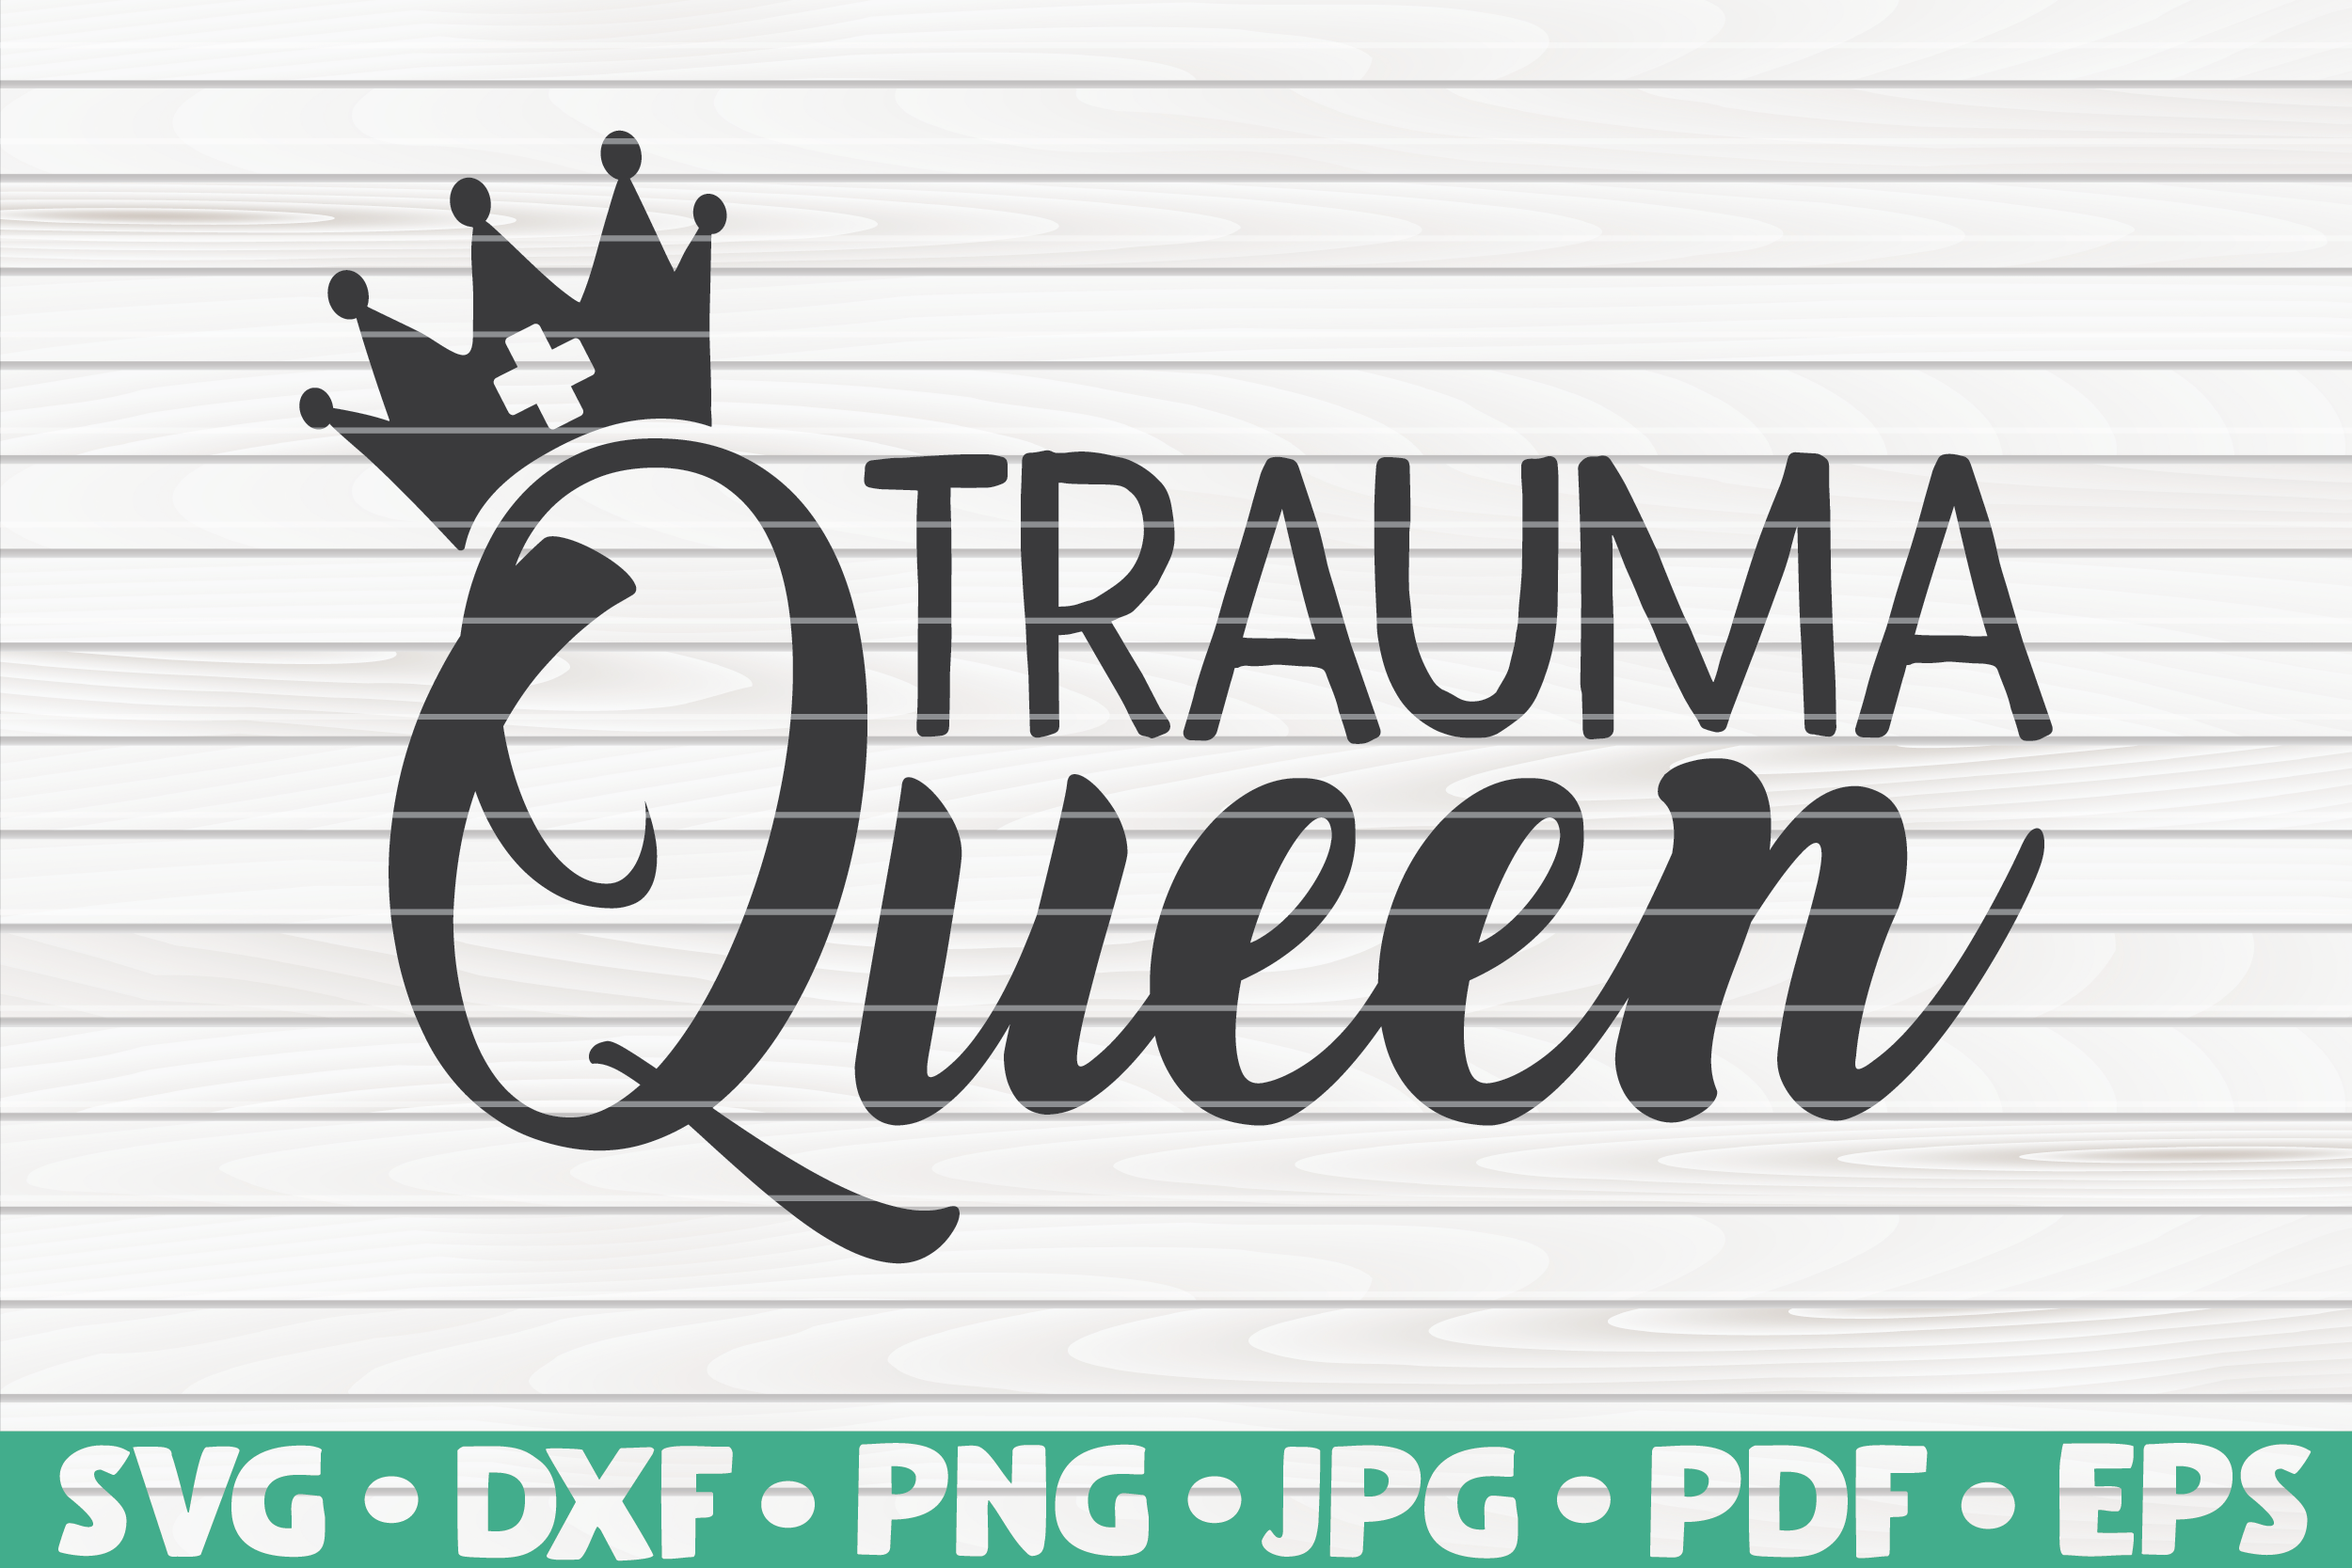 Download Free Trauma Queen Nurse Life Graphic By Mihaibadea95 Creative Fabrica for Cricut Explore, Silhouette and other cutting machines.